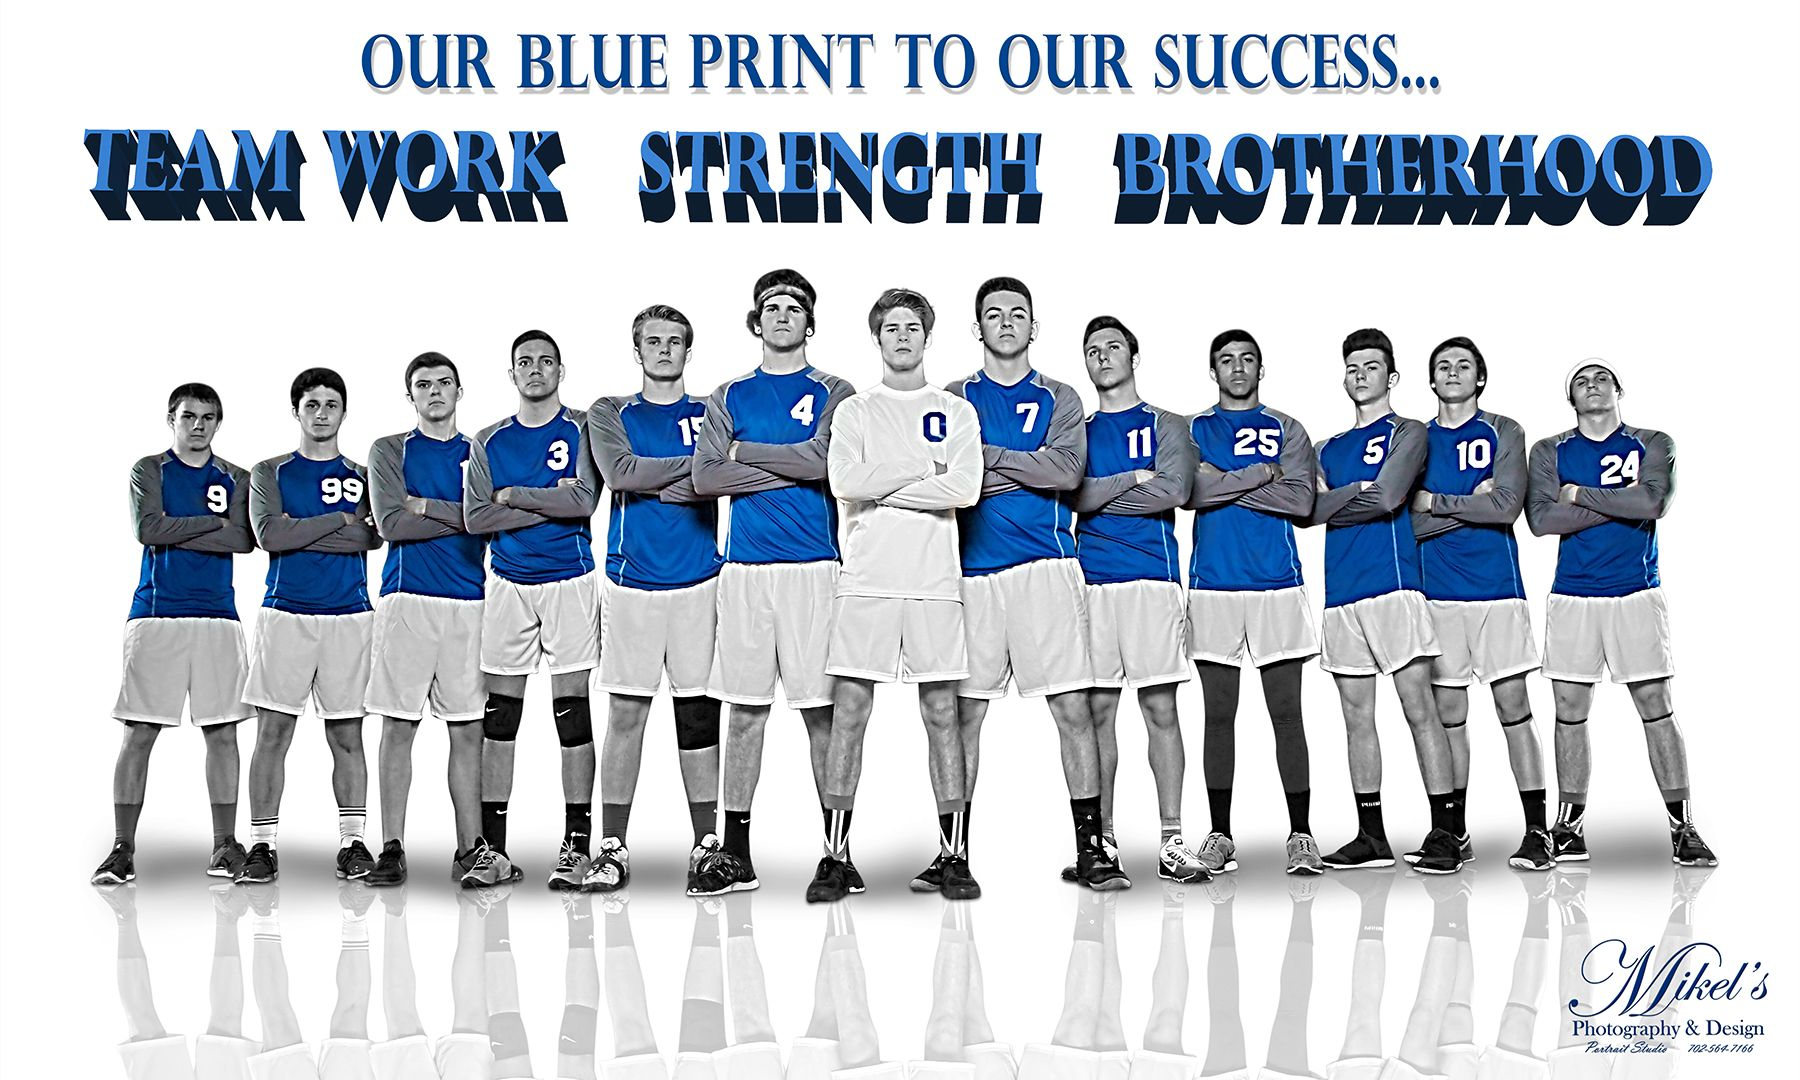 Bhsd Men S Volleyball Team Banner Blue Print Of Success Mikel S Photography Design Www Mikelsphotography Com 702 Mens Volleyball Team Banner Volleyball Team